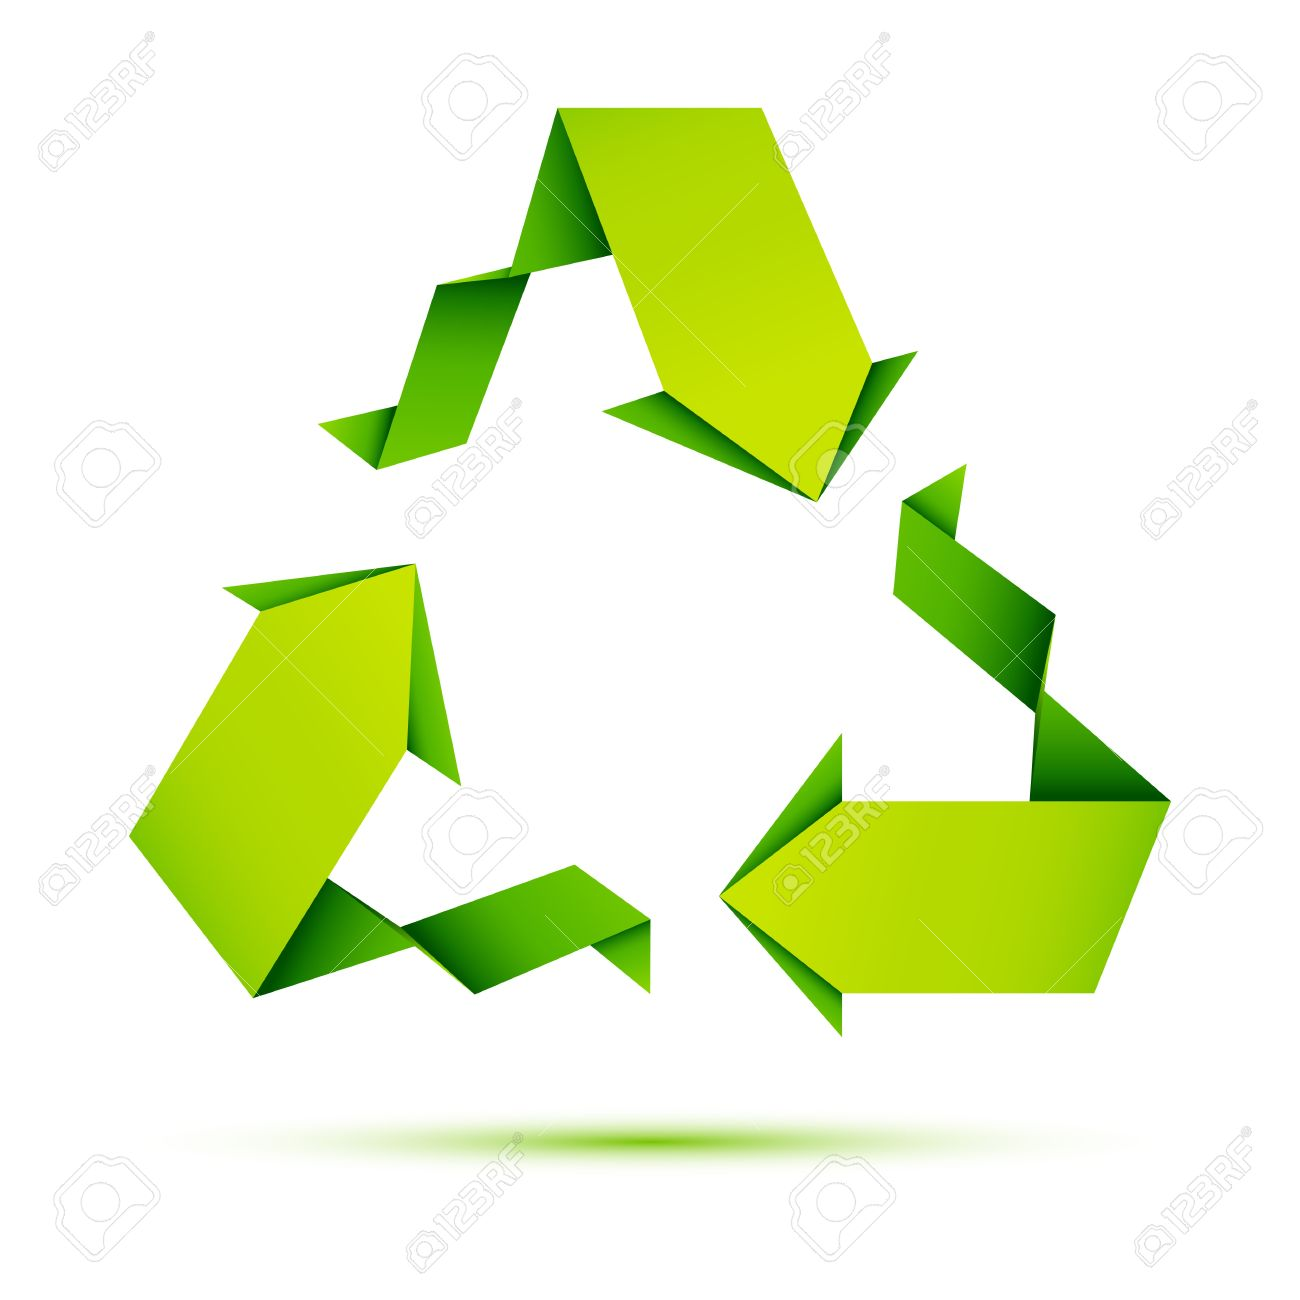 Illustration of recycle symbol made of origami paper royalty free illustration of recycle symbol made of origami paper stock vector 9424339 buycottarizona